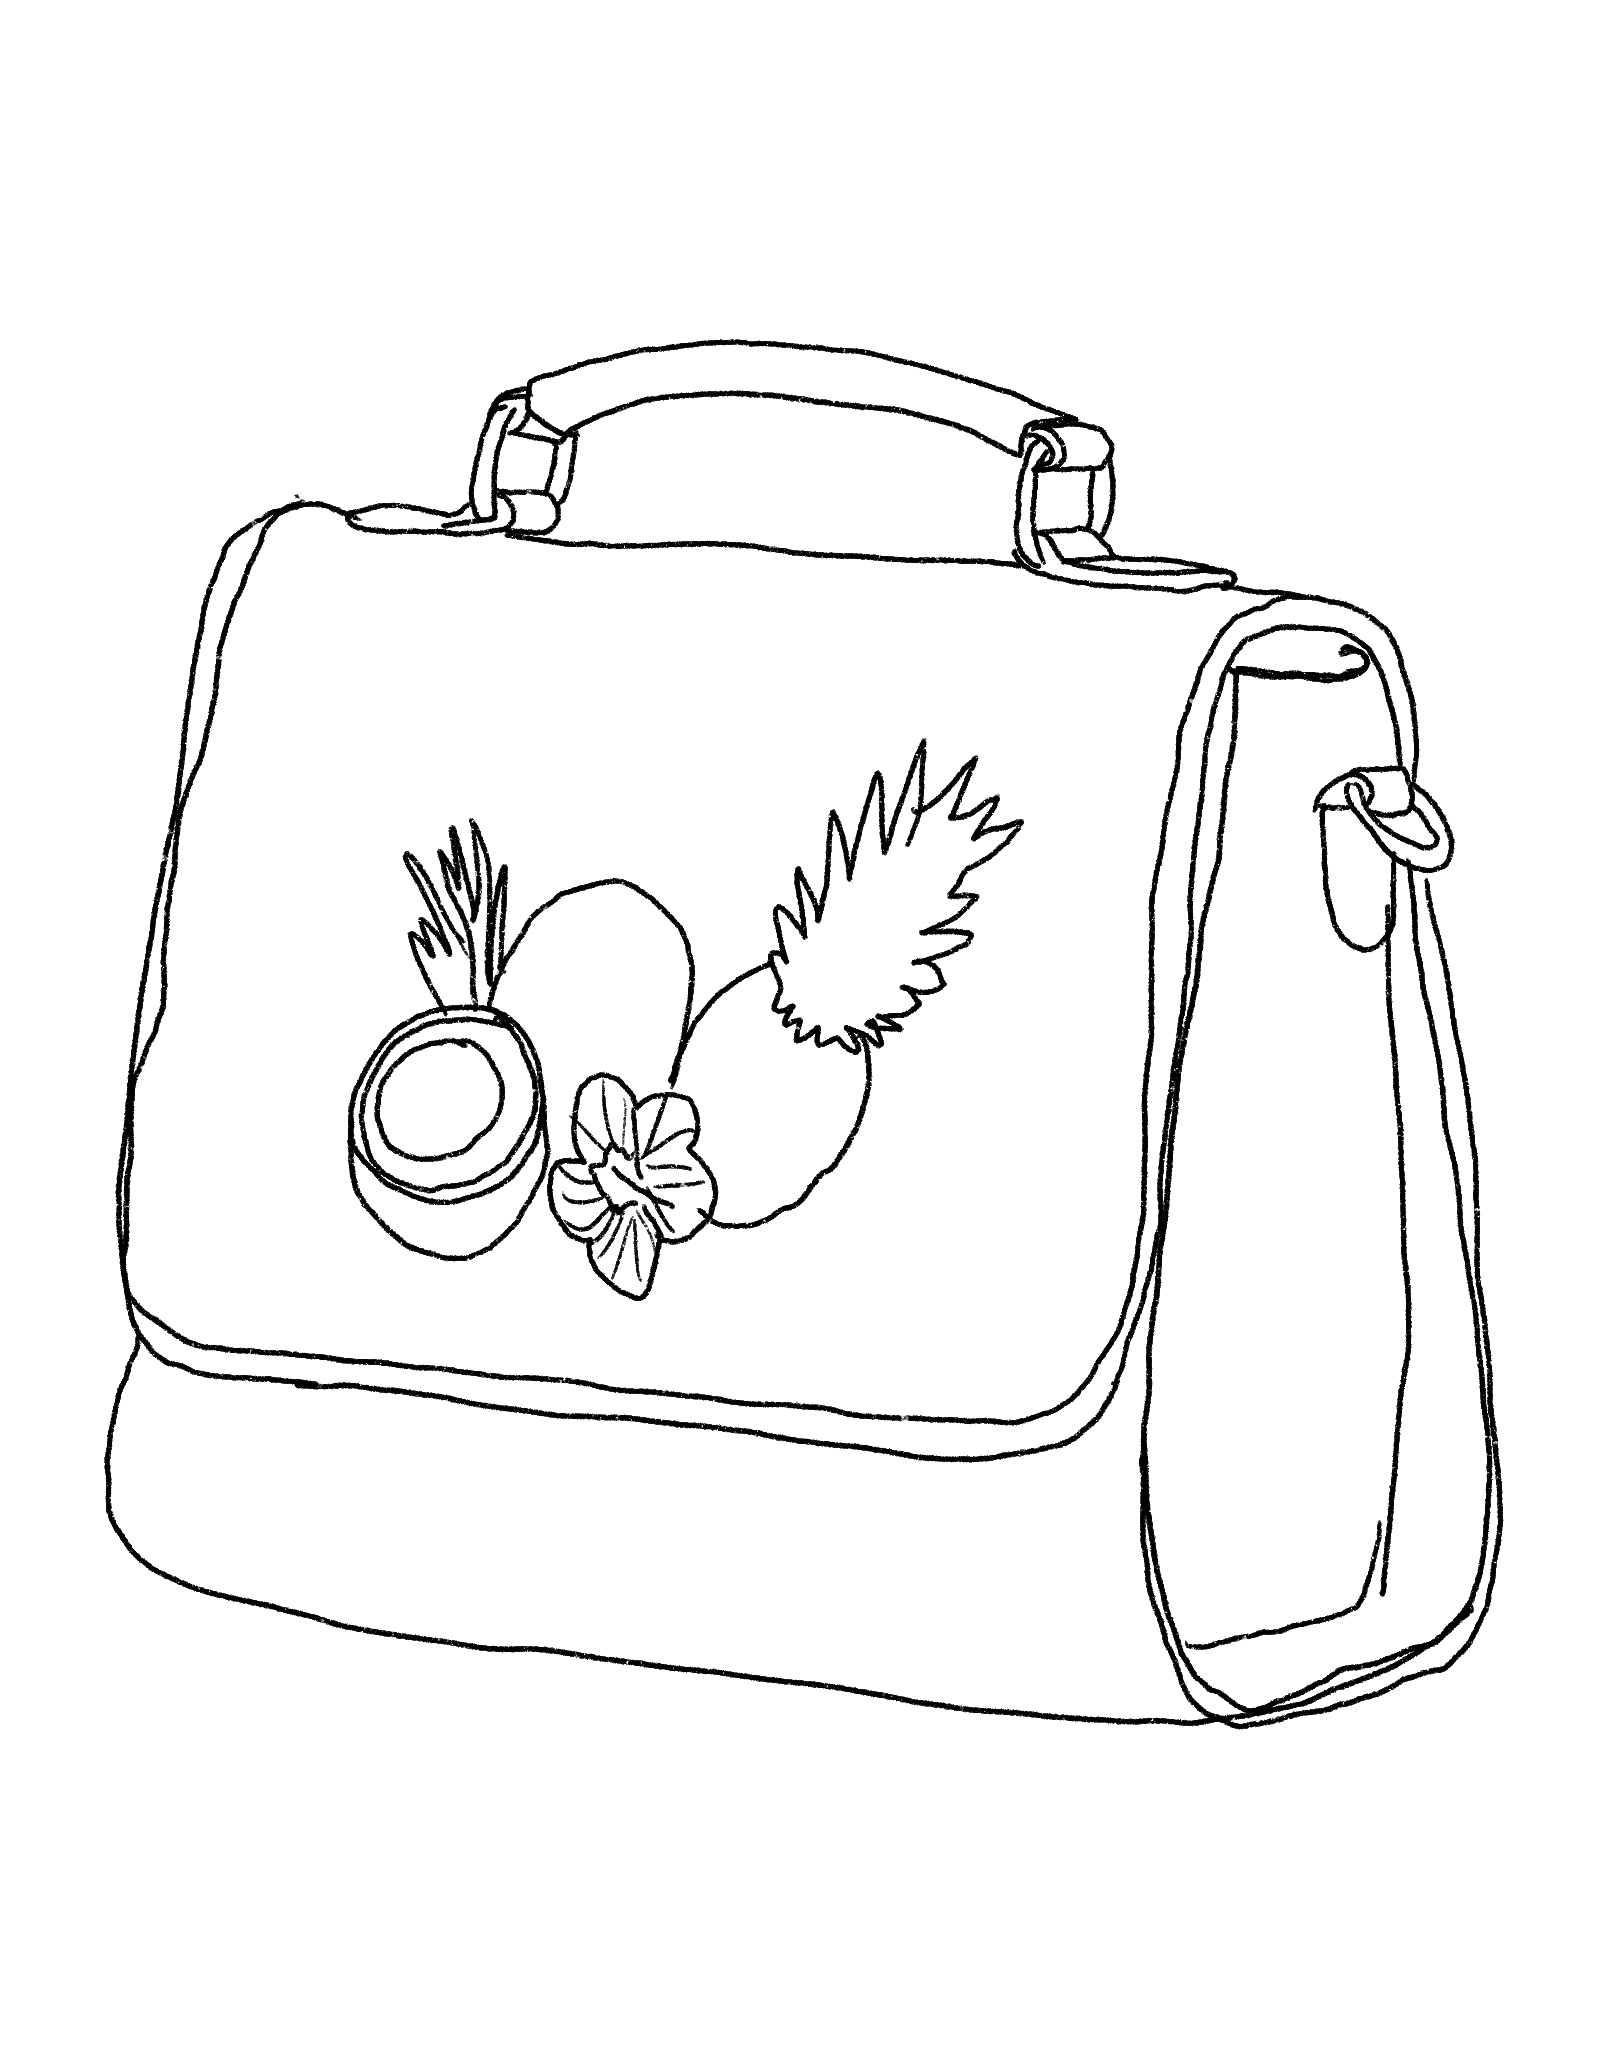 Illustration of a purse with fruit on it.